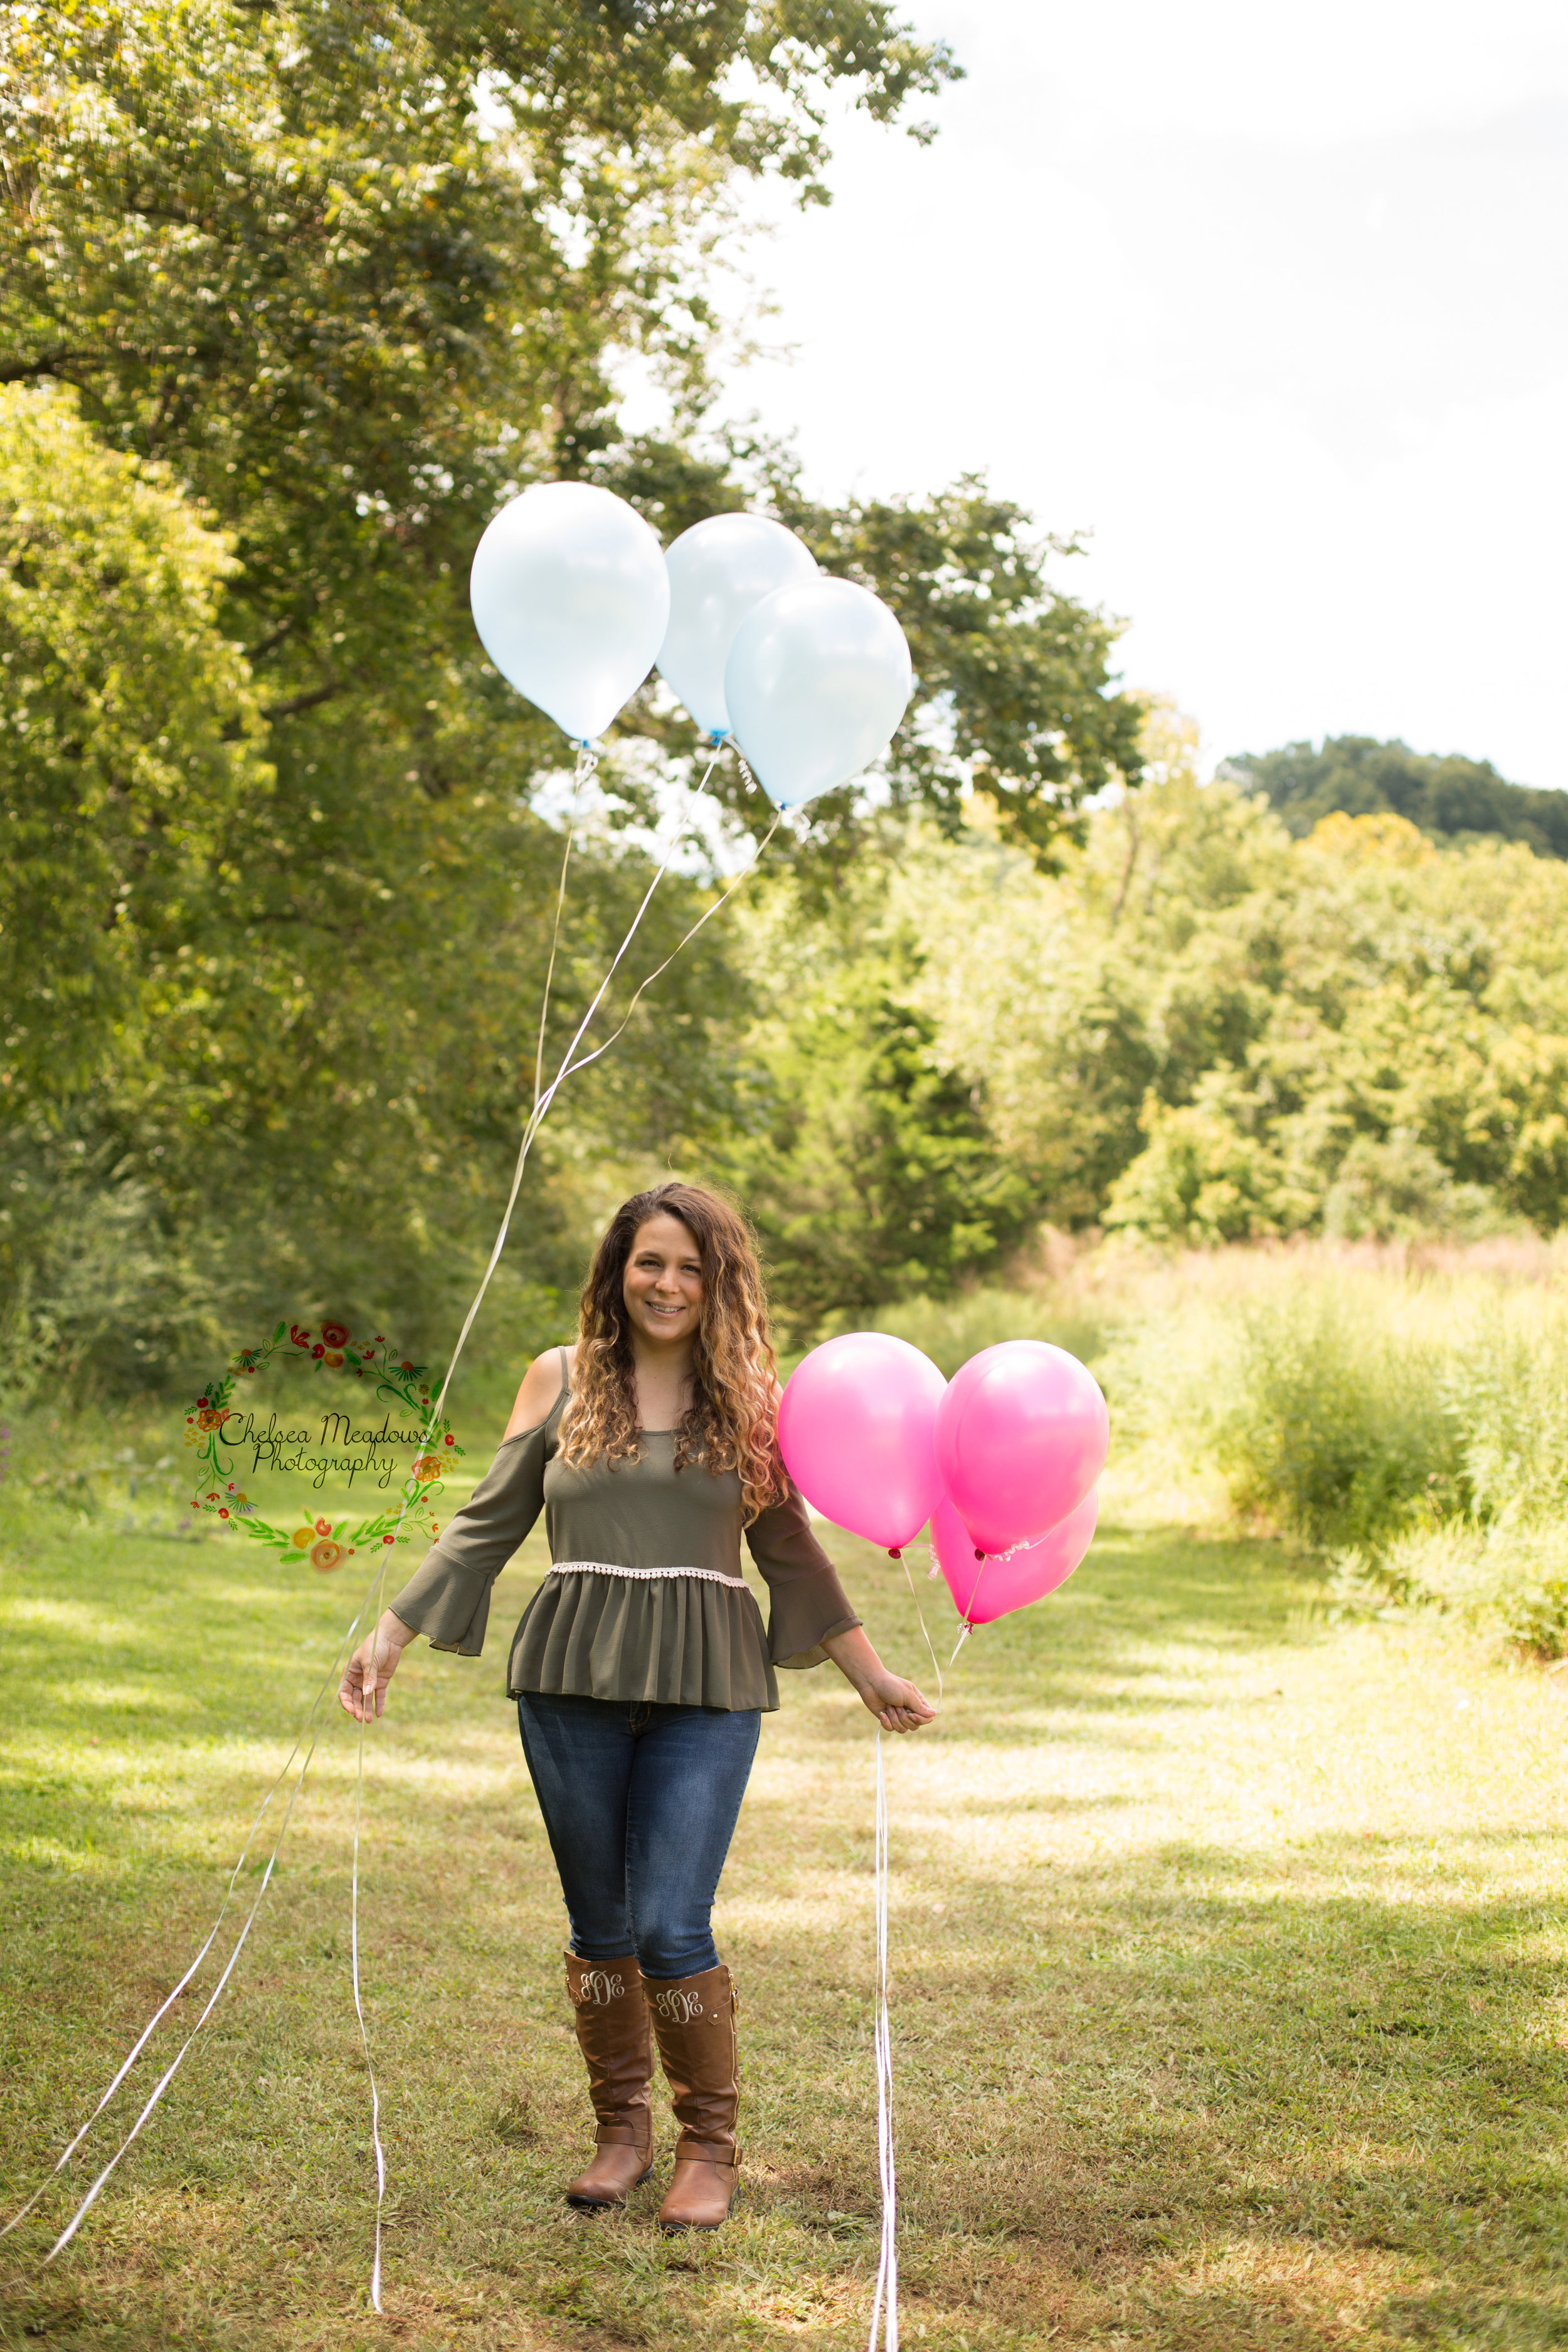 Jessica Gender Reveal - Nashville Newborn Photography - Chelsea Meadows Photography (6)_edited-1.jpg